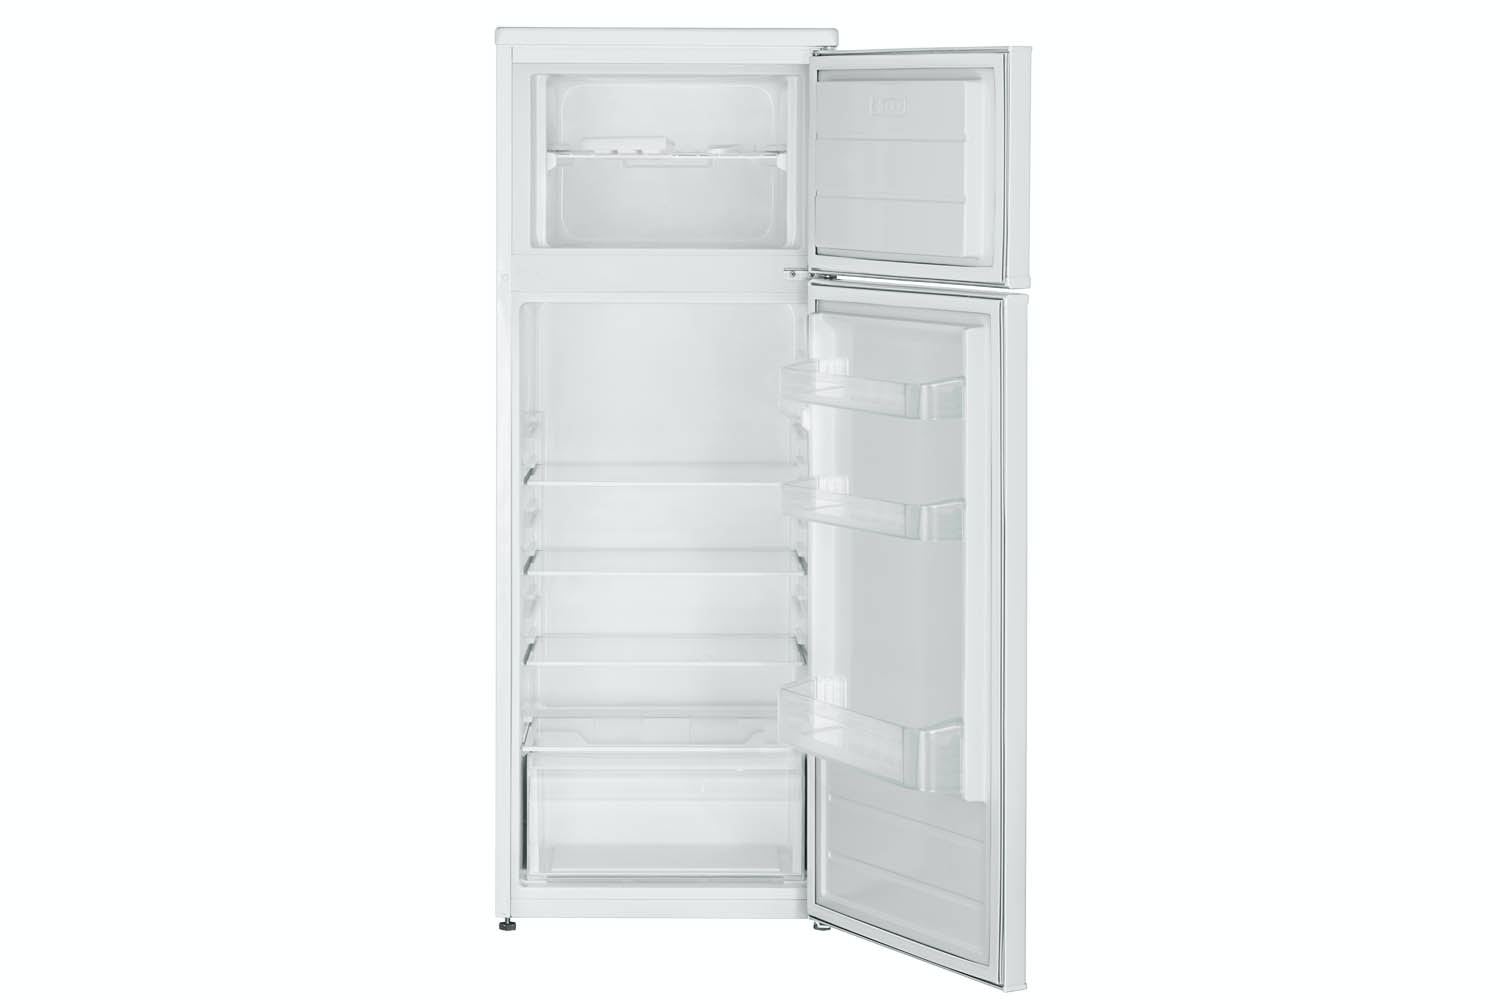 Finlux Fridge Freezer | FF213WH